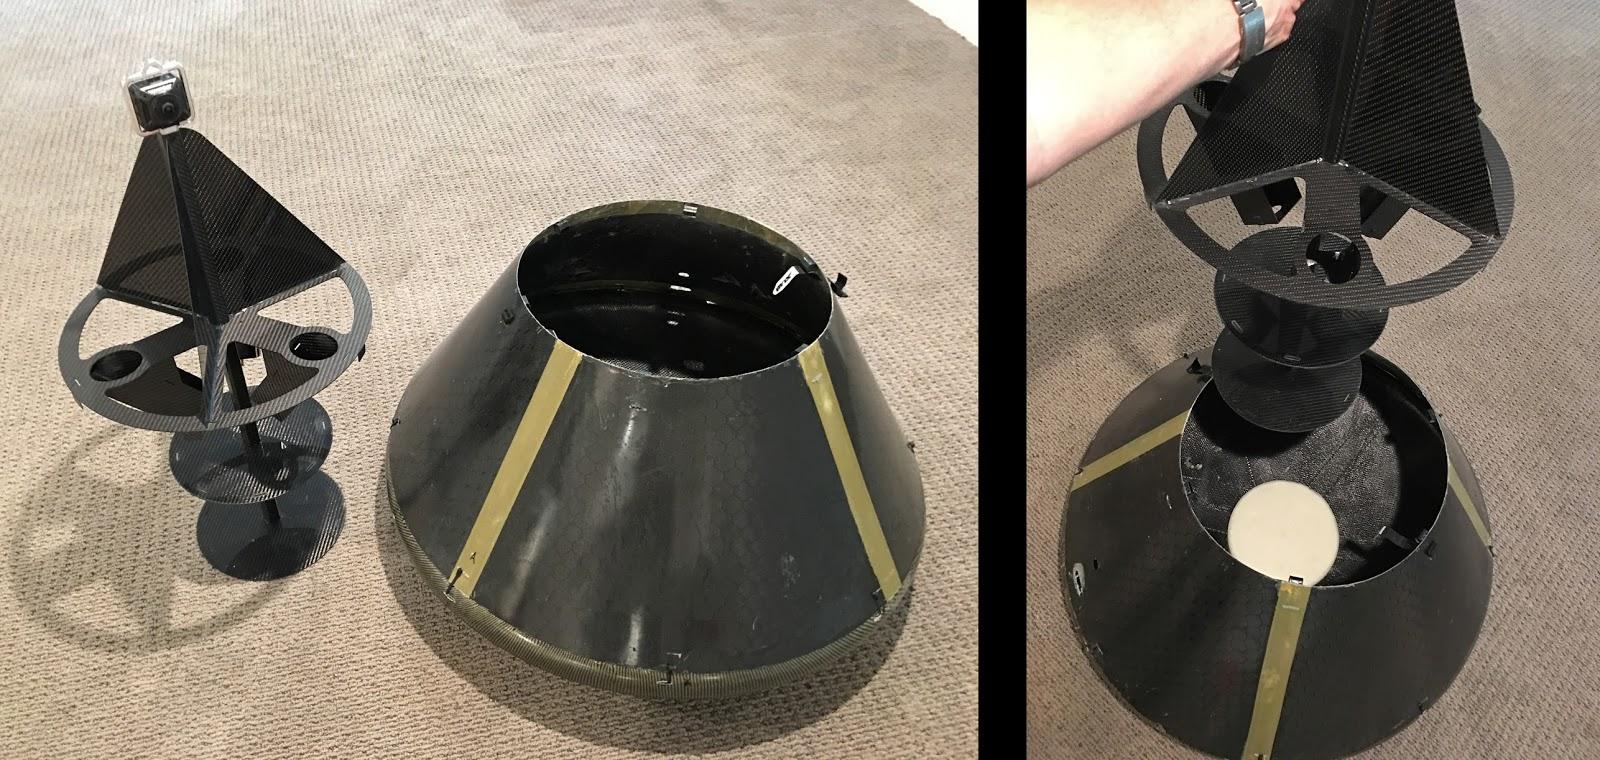 Left:Structure with ELS & 360 VR camera, sitting next to aeroshell. Right:Inserting structure into aeroshell. Foam pad placement is visible.